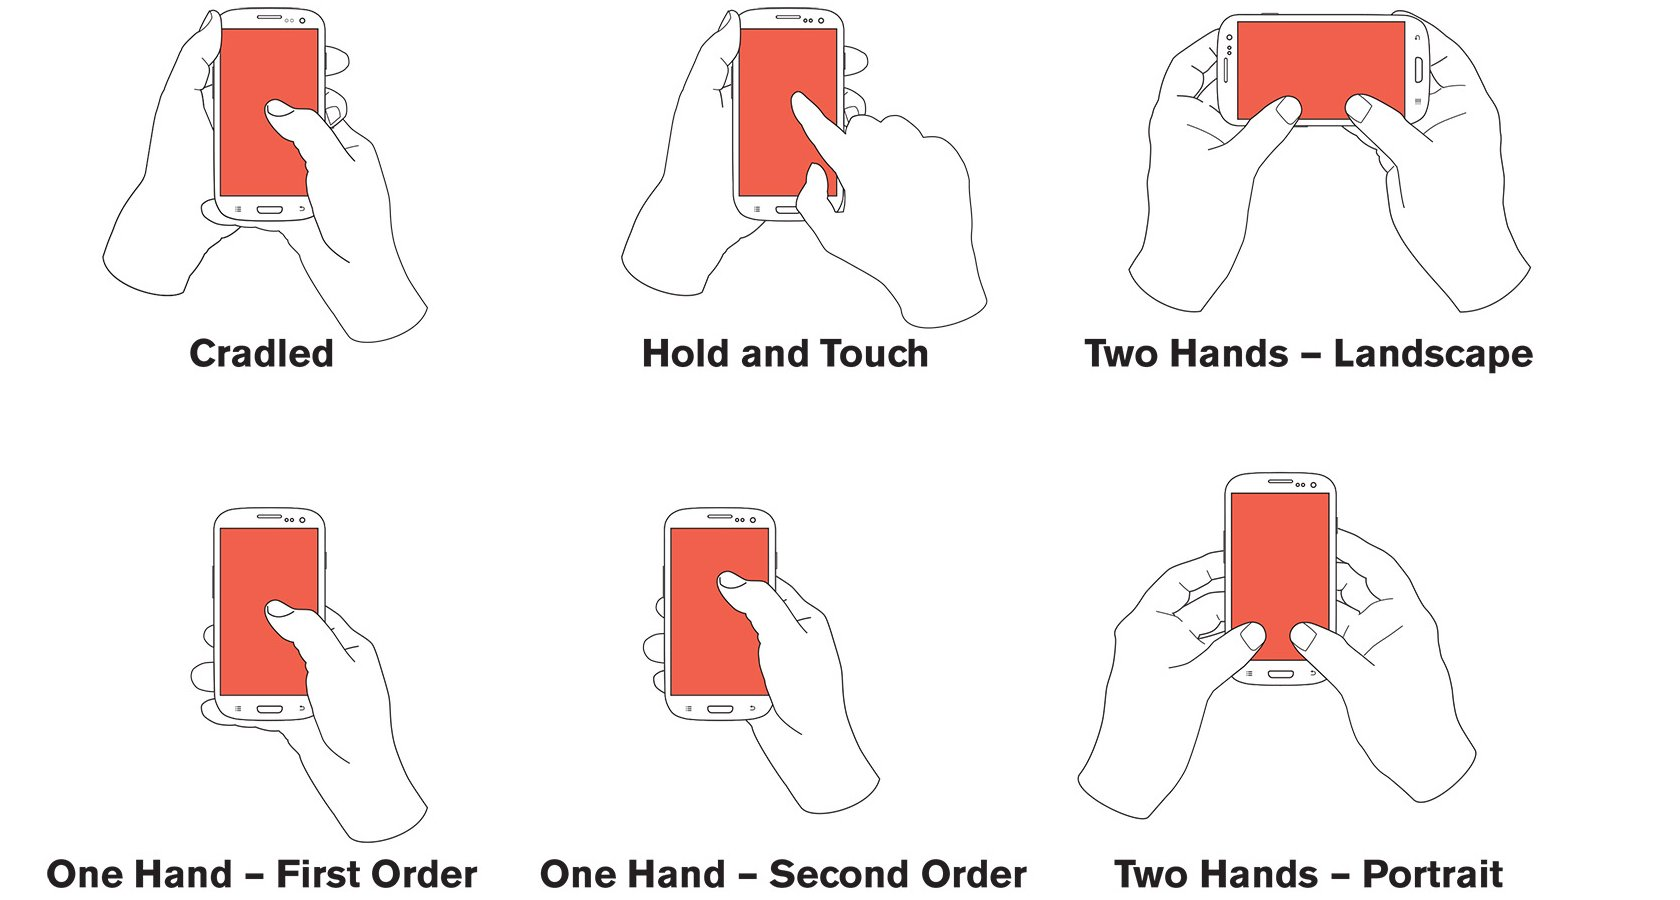 How people hold their mobile devices affects mobile UX design